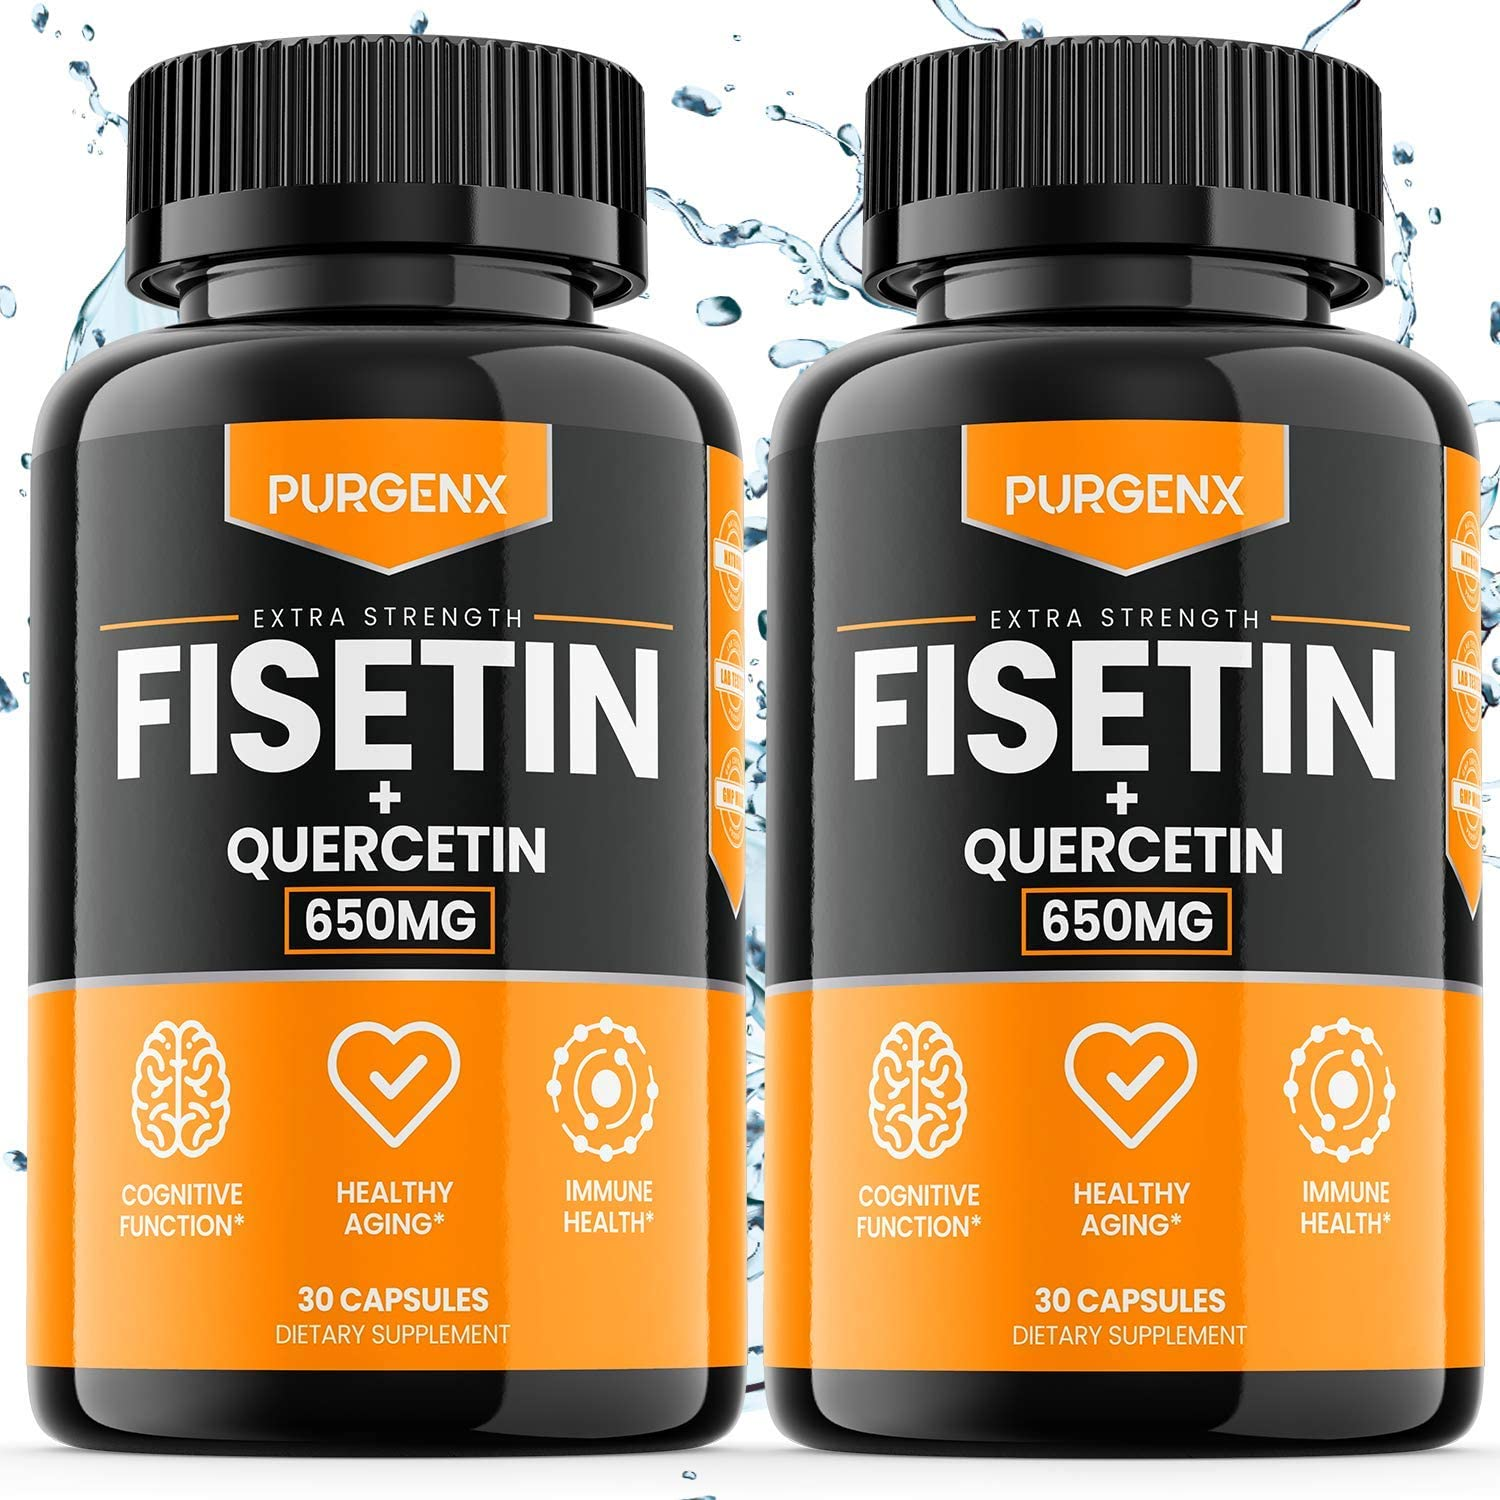 (60 Capsules   650mg) Fisetin with Quercetin 650mg Brain Booster Supplement Vitamin Pills for Anti Aging, Focus, Memory, Energy, Mood and Metabolism - Immune Support Antioxidant Flavonoid, Vegan